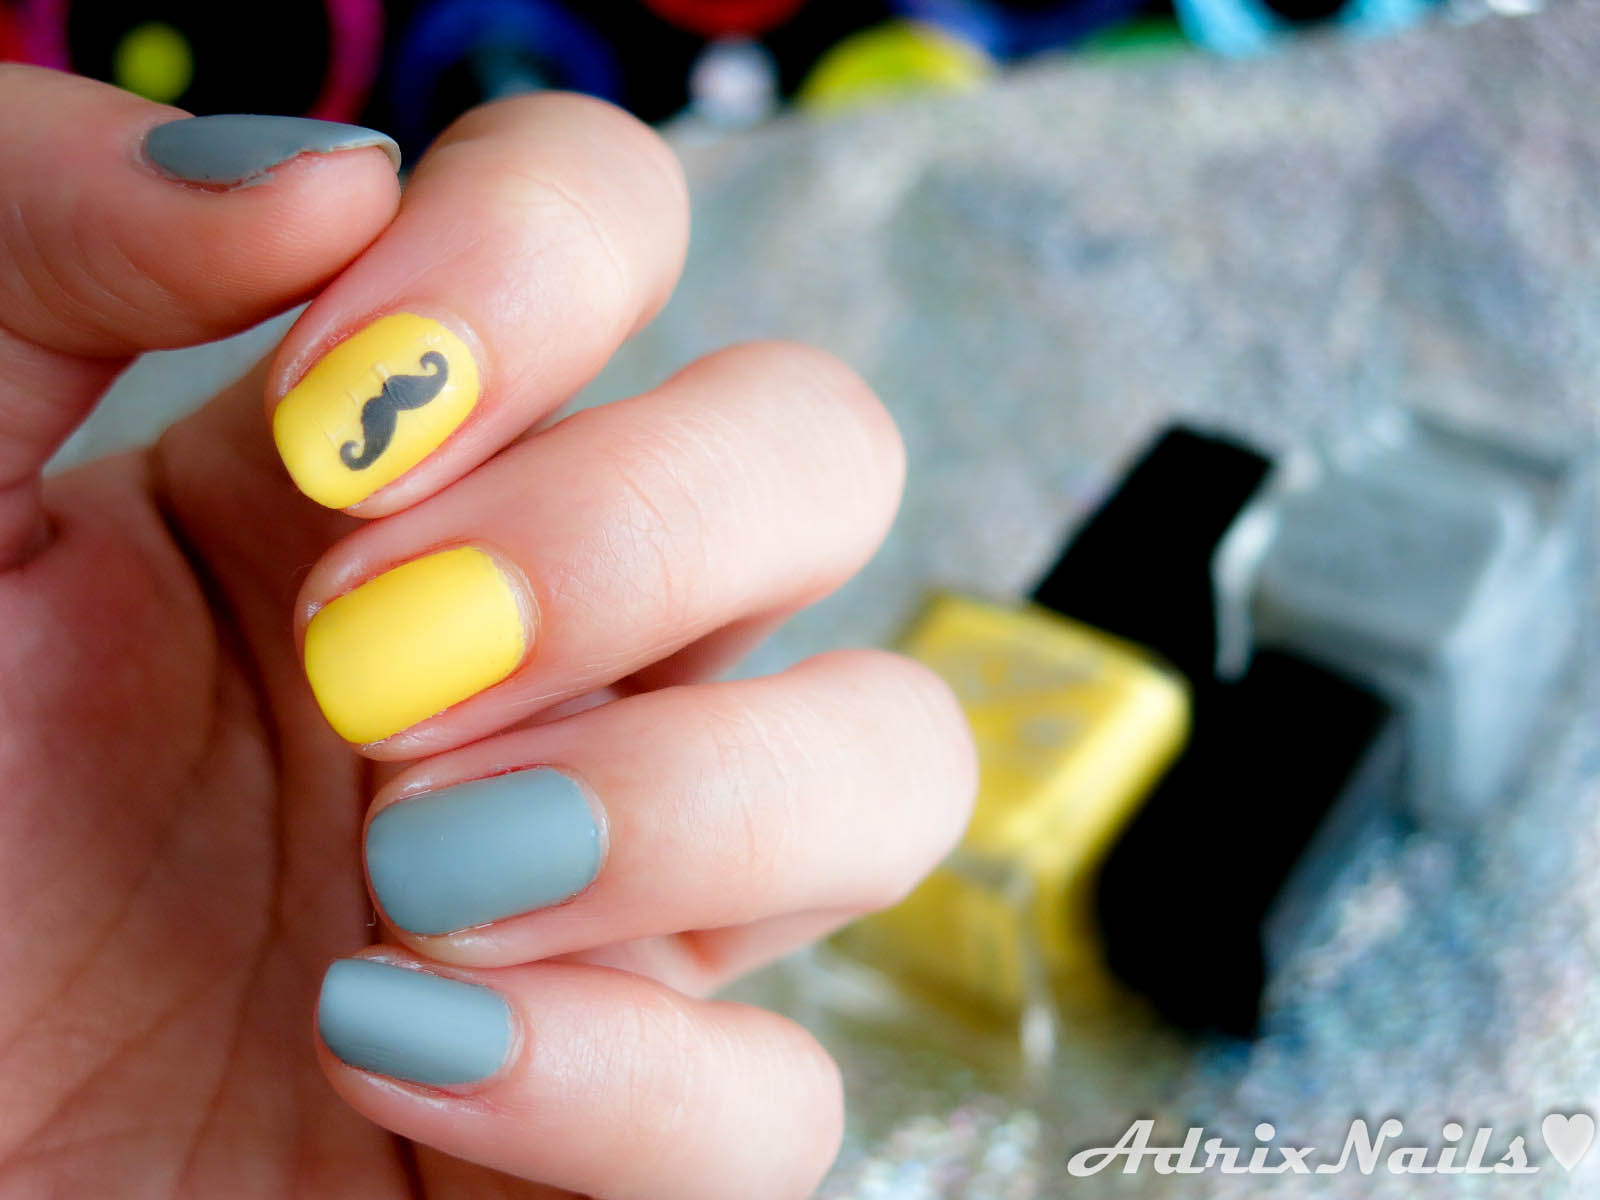 Colores: City Color – Ash y Anna Banana – | Adrix Nails: Uñas ...